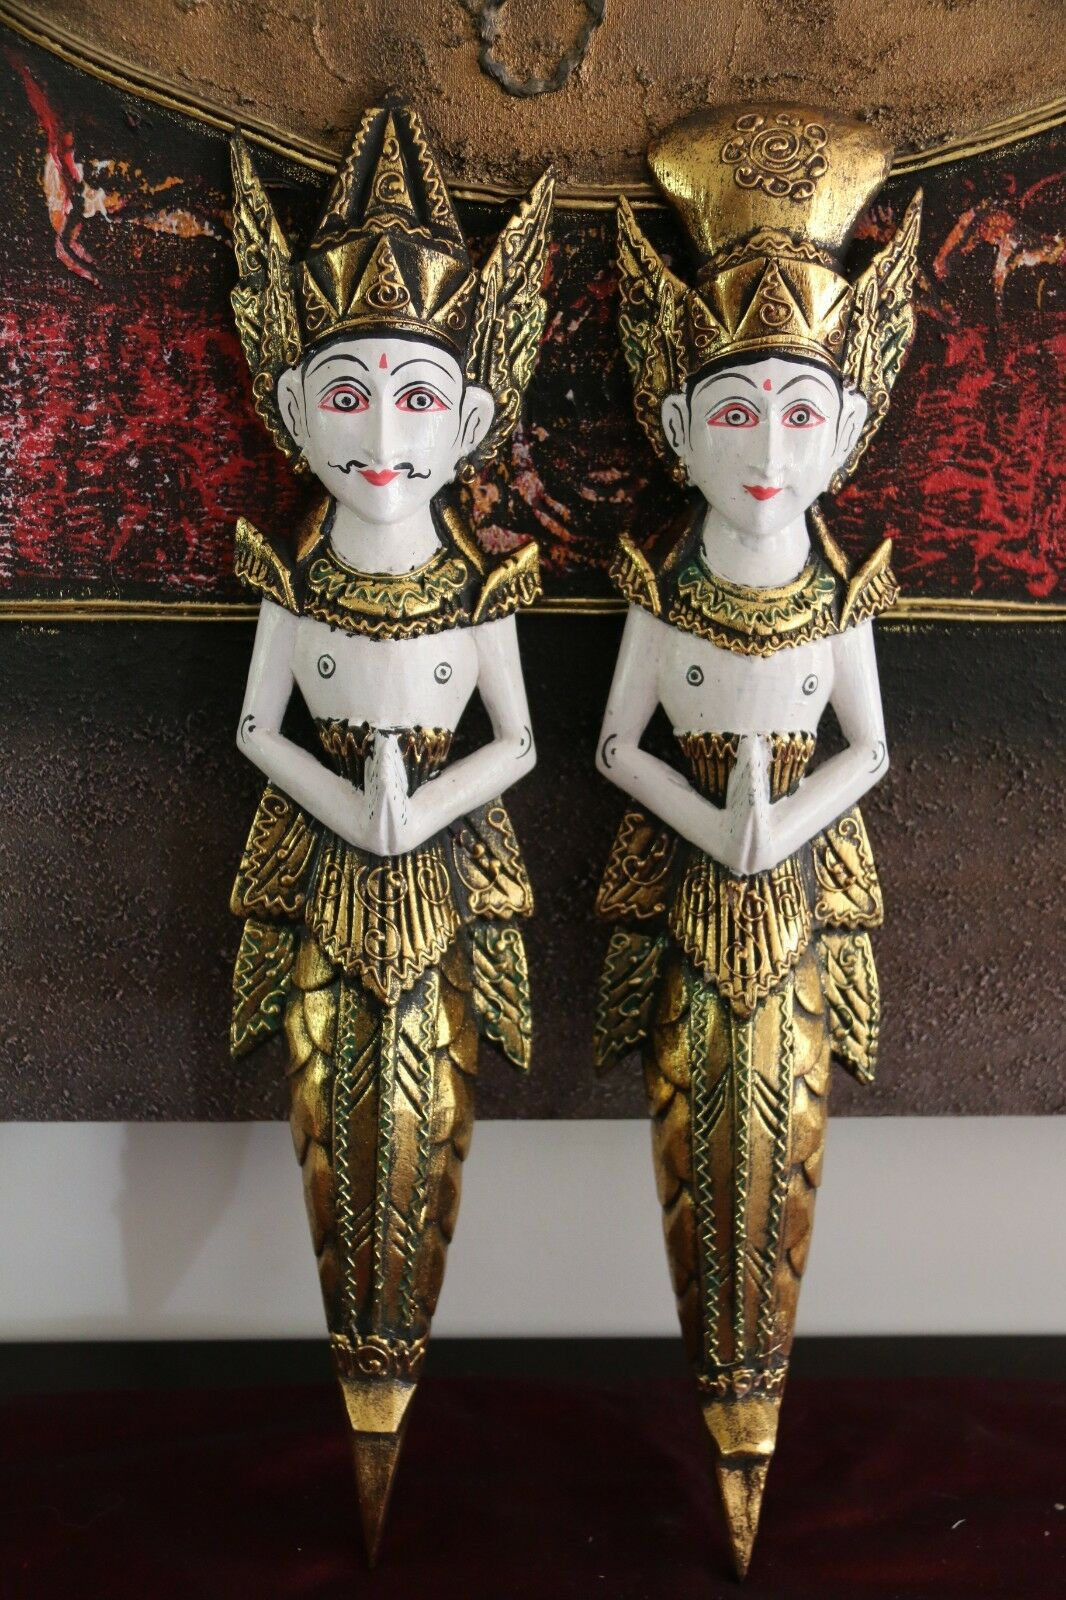 NEW Balinese Hindu Rama & Shinta Wood Carved Wall Sculptures - BALI Hindu Art